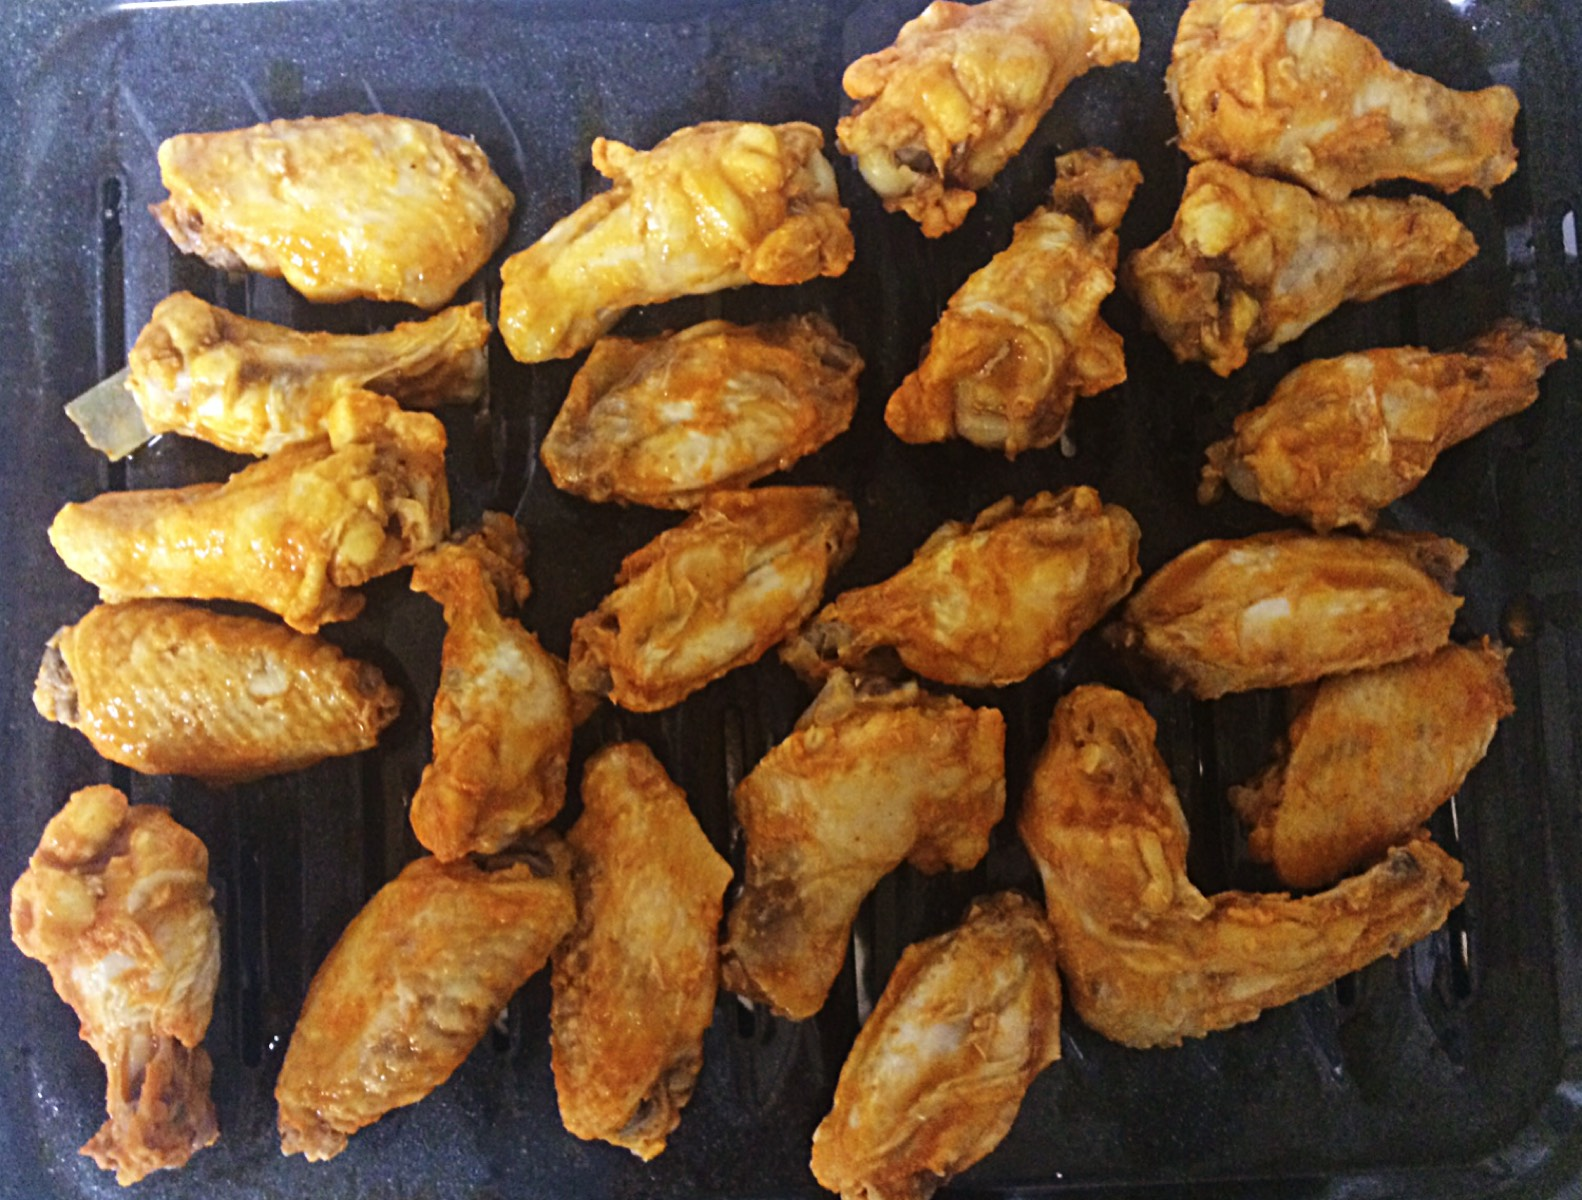 broiled wings